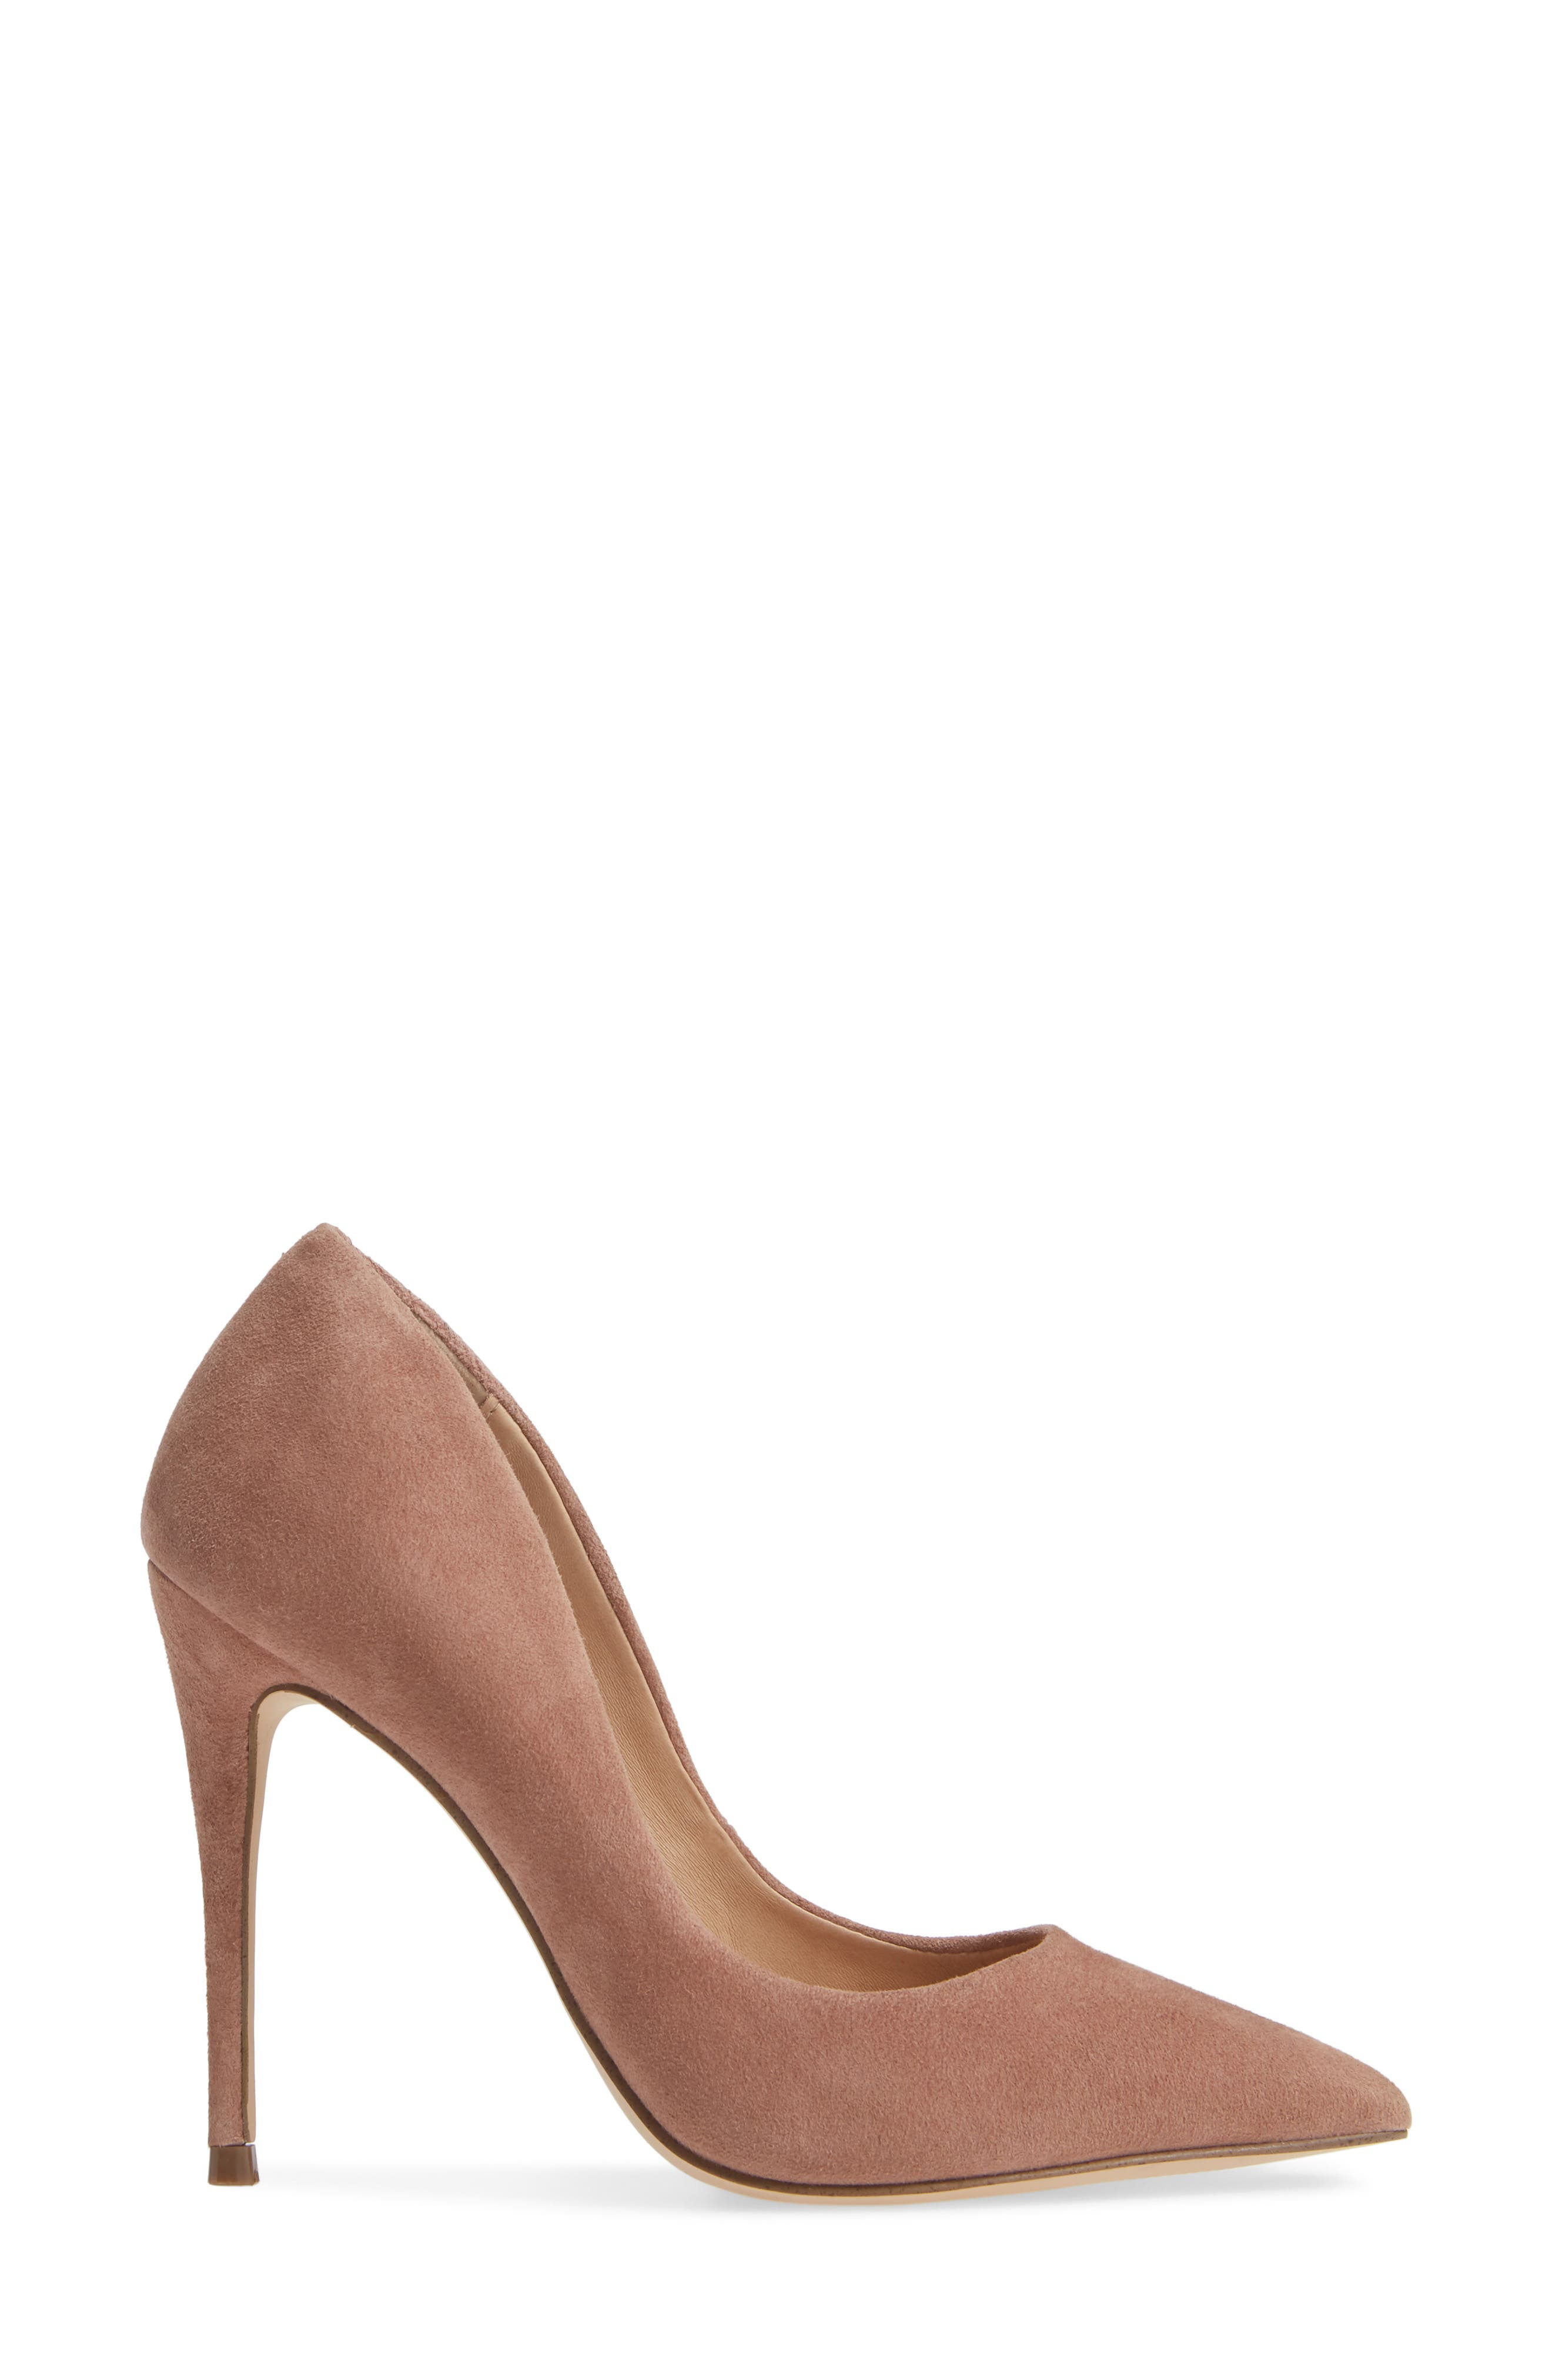 Daisie Pointy-Toe Pump,                             Alternate thumbnail 3, color,                             Tan Suede